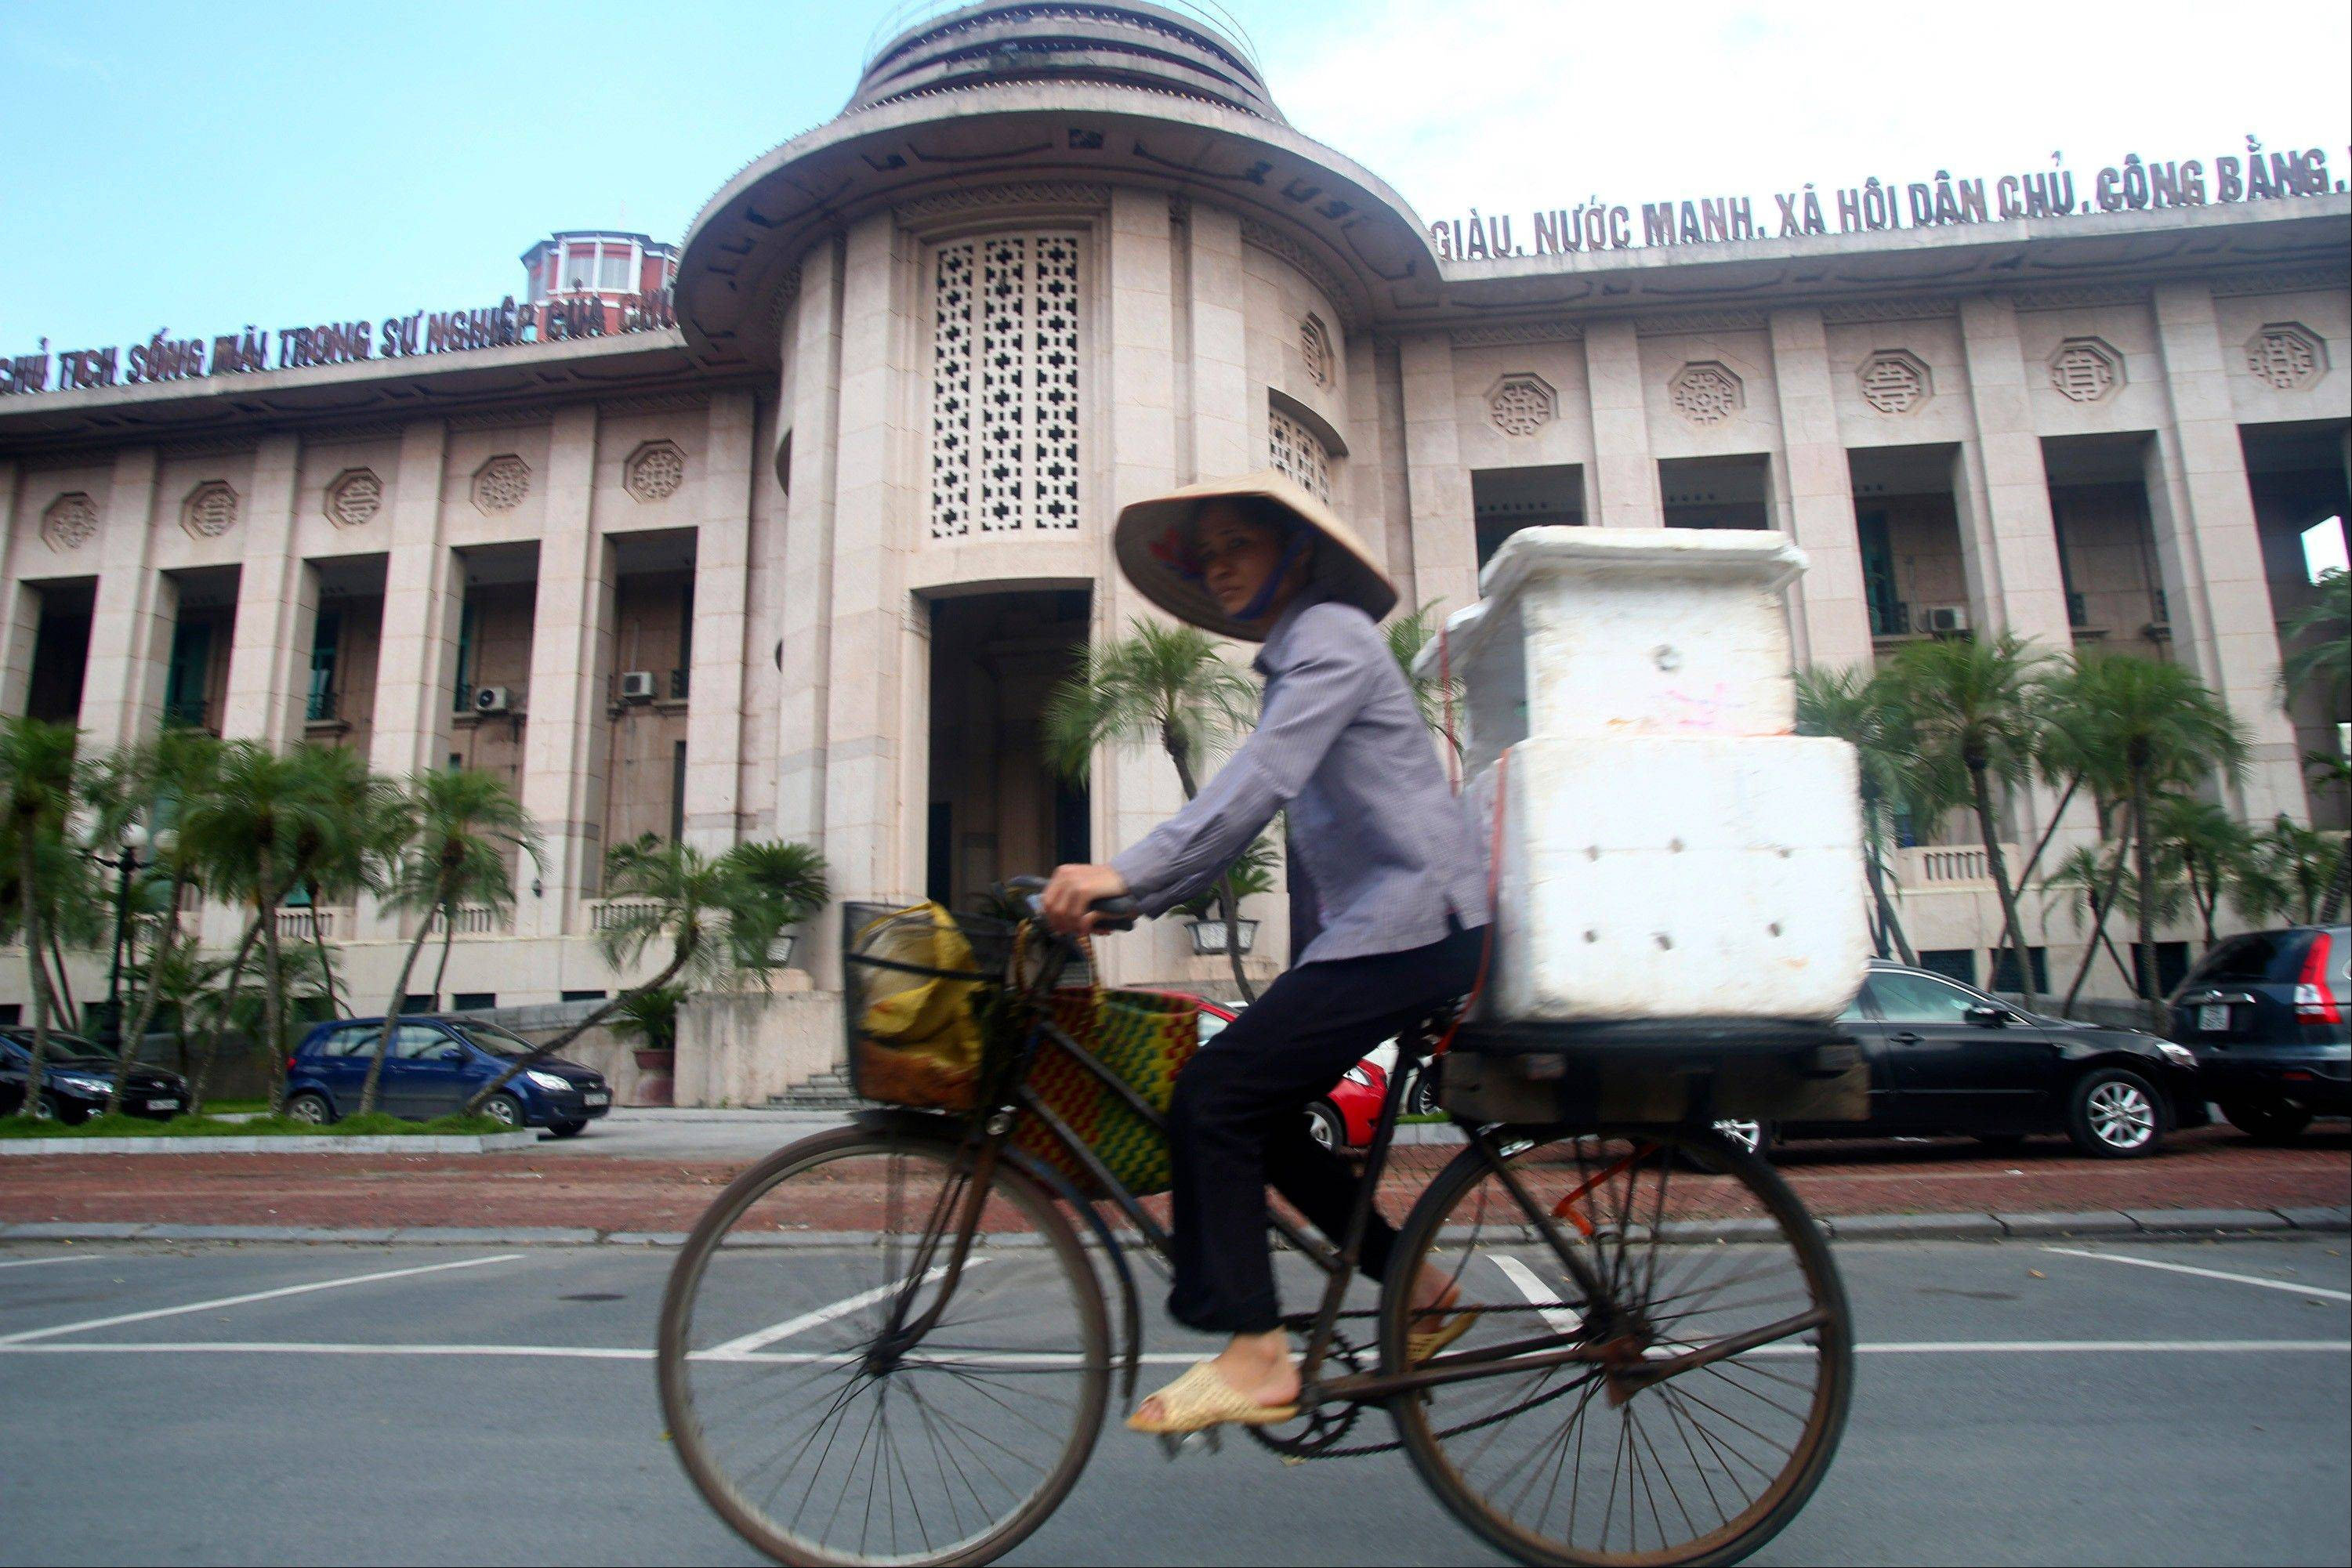 A street vendor cycles past the Central Bank of Vietnam in Hanoi, Vietnam. Once seen as an emerging Asian dynamo racing to catch up with its neighbors, Vietnam's economy is mired in malaise, dragged down by debt-hobbled banks, inefficient and corrupt state-owned enterprises and bouts of inflation.